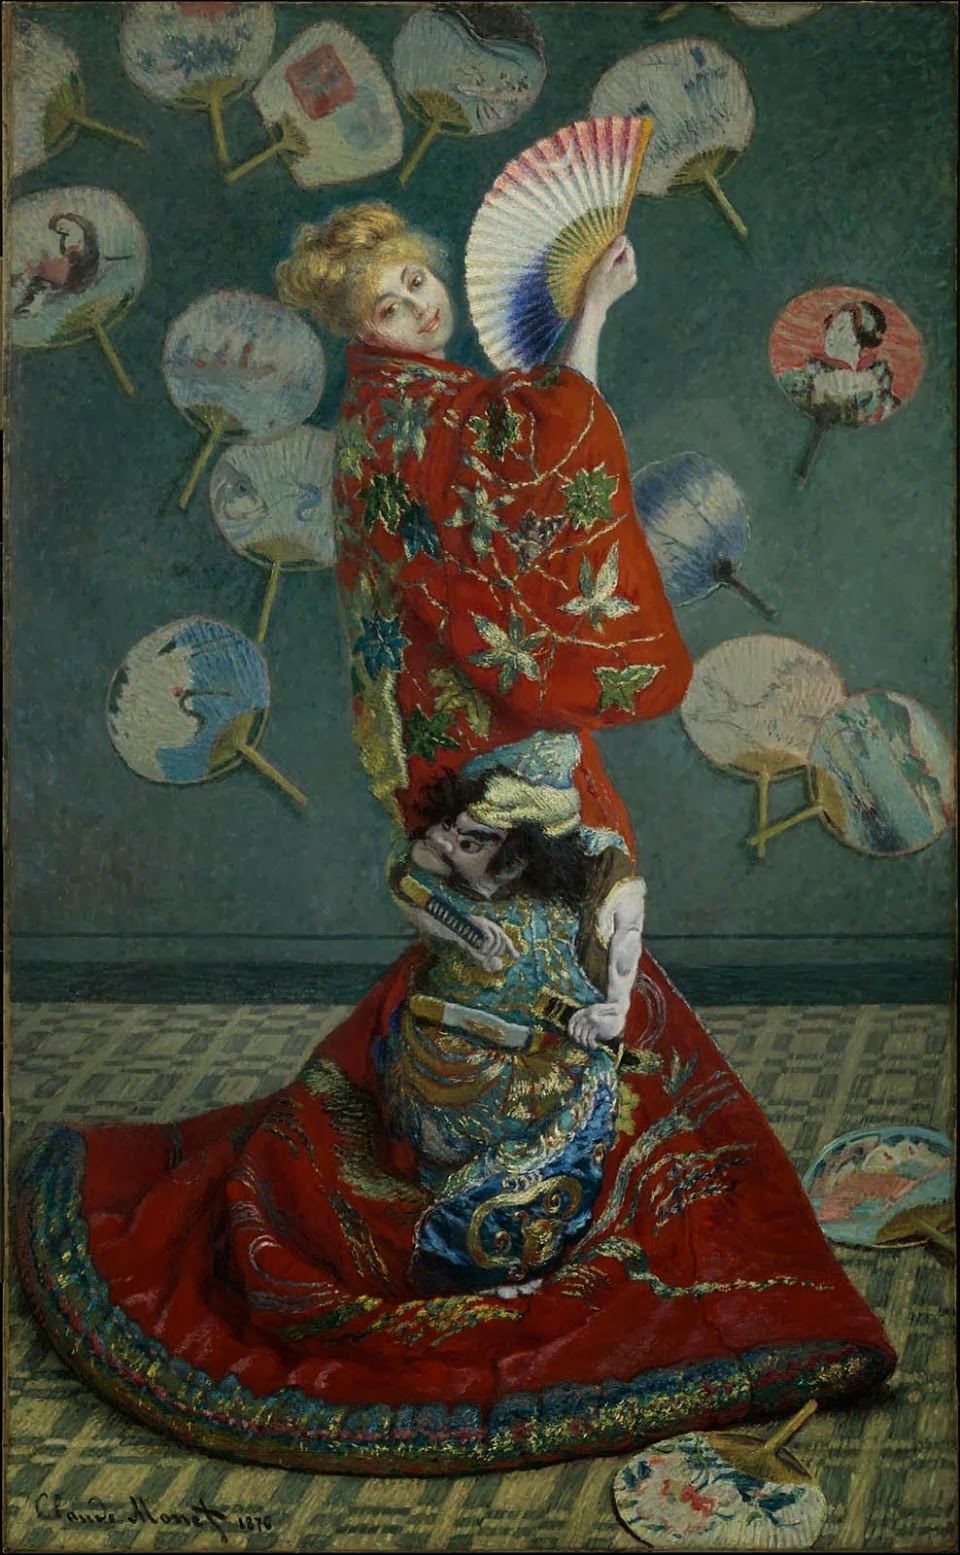 1876 La Japonaise (Camille Monet in Japanese Costume) oil on canvas 231.8 x 142.3 cm Museum of Fine Arts, Boston MA.jpg